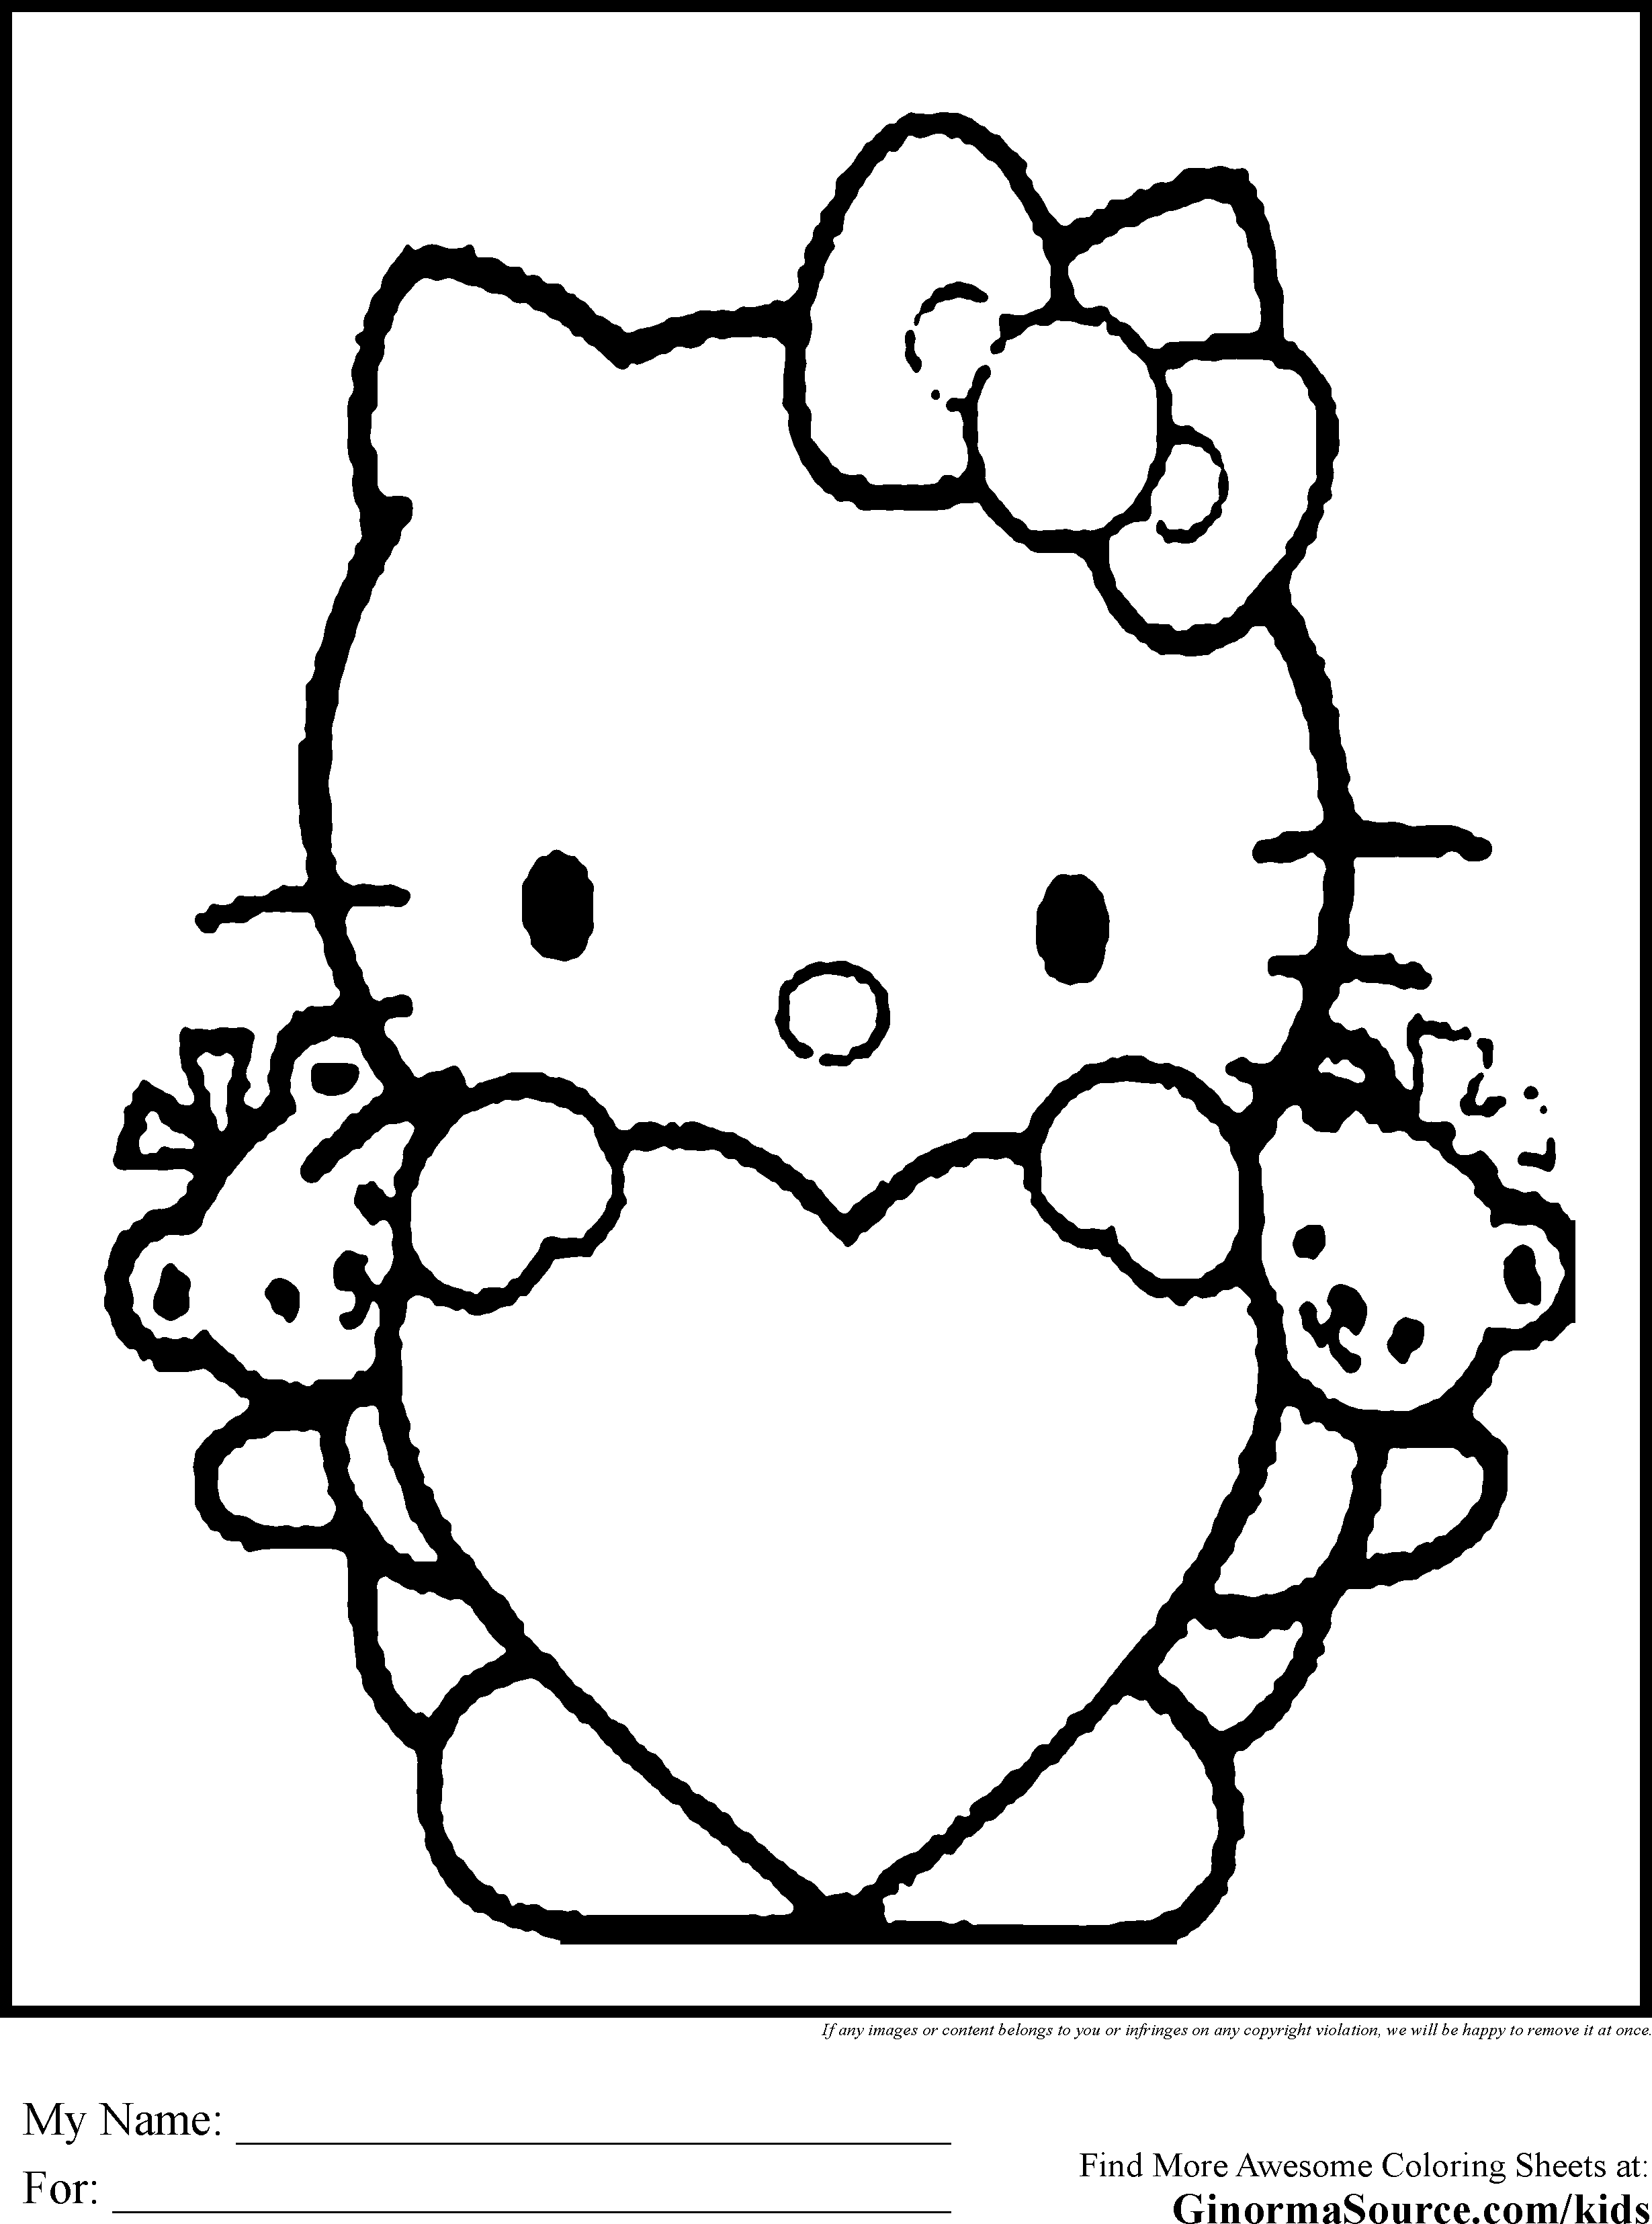 Adult Top Hello Kitty Valentine Coloring Pages Images cute free printable hello kitty valentine coloring pages az forcoloringpages com gallery images